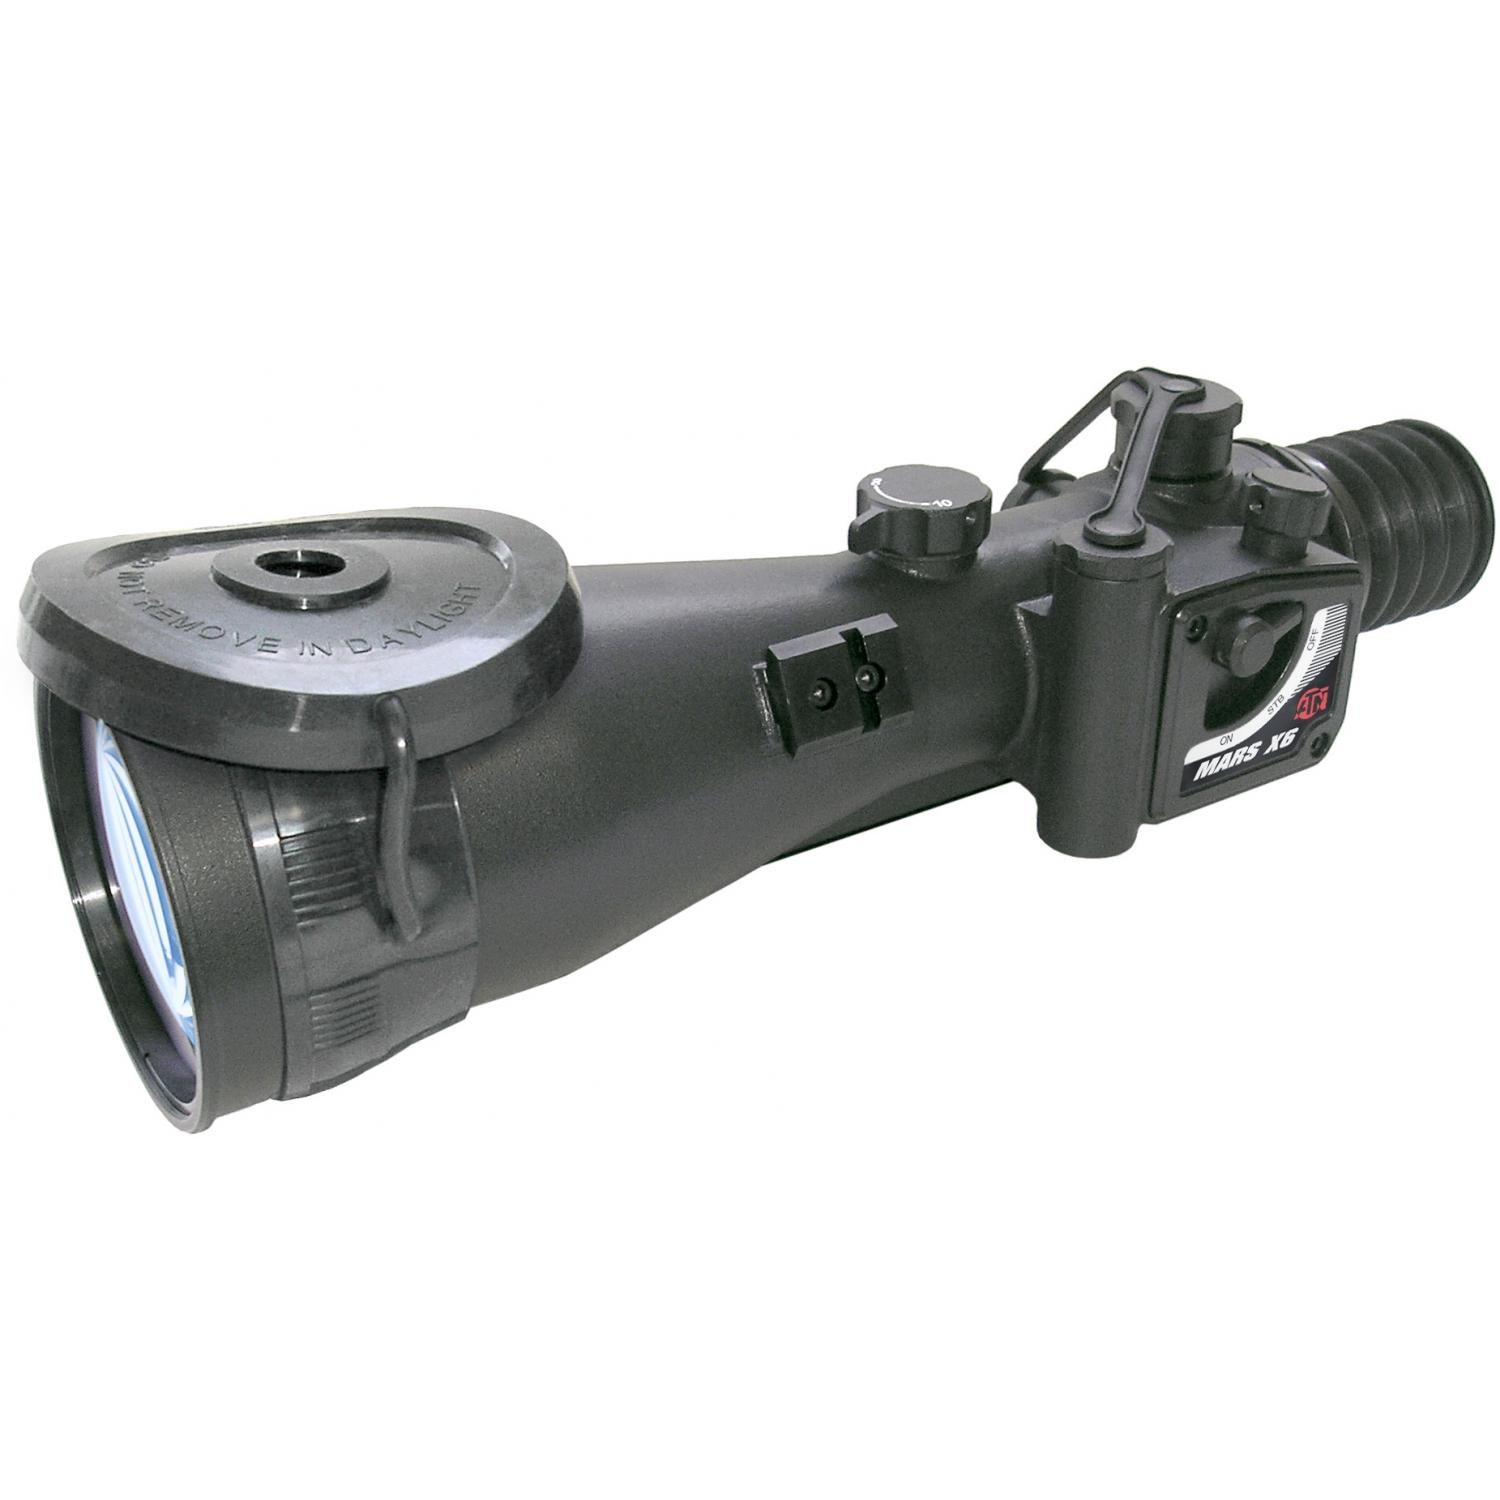 Atn Mars6x Night Vision Weapon Scope With Gen Wpt 60-74 Lp/mm Resolution - Nvwsmrs6wp